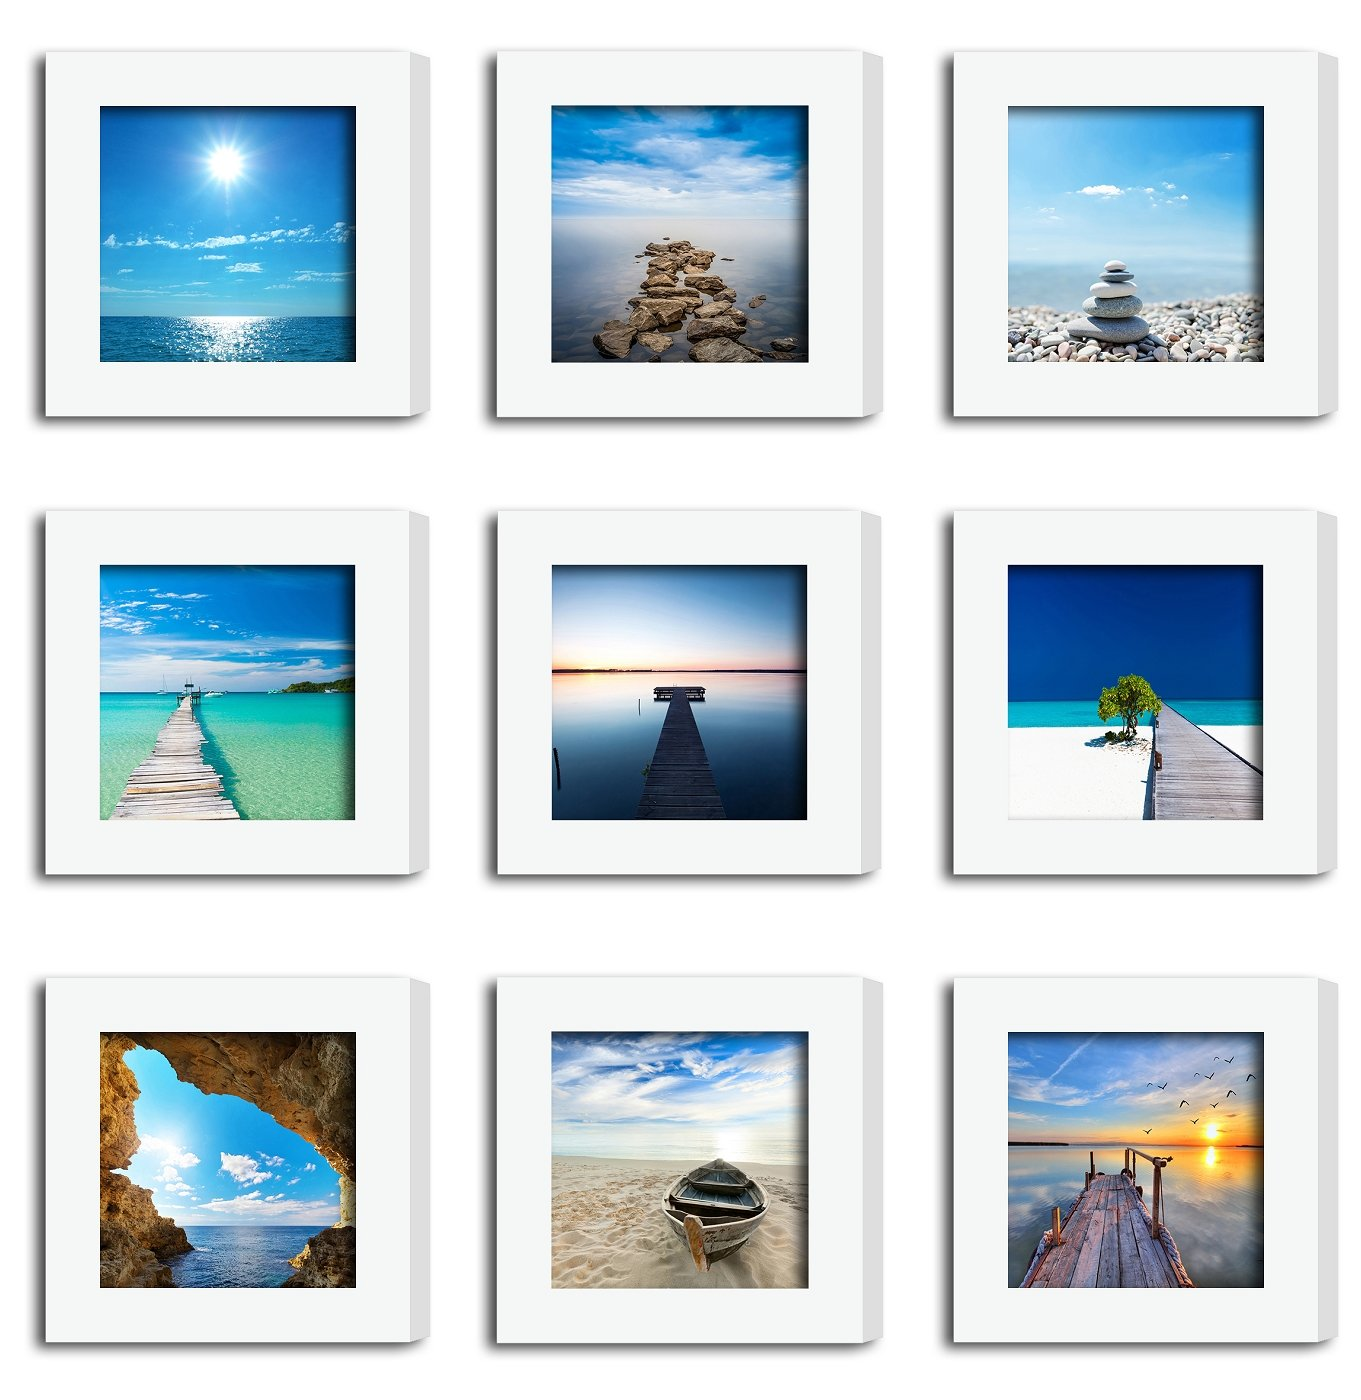 9Pcs 4x4 Real Glass Wood Frame White Square , Fit Family Image Pictures Photo (Window 3.6x3.6 inch) , Desktop Stand On Wall Family Combine Sea Jetty Beach Motivational Decoration (10 Set Pictures)